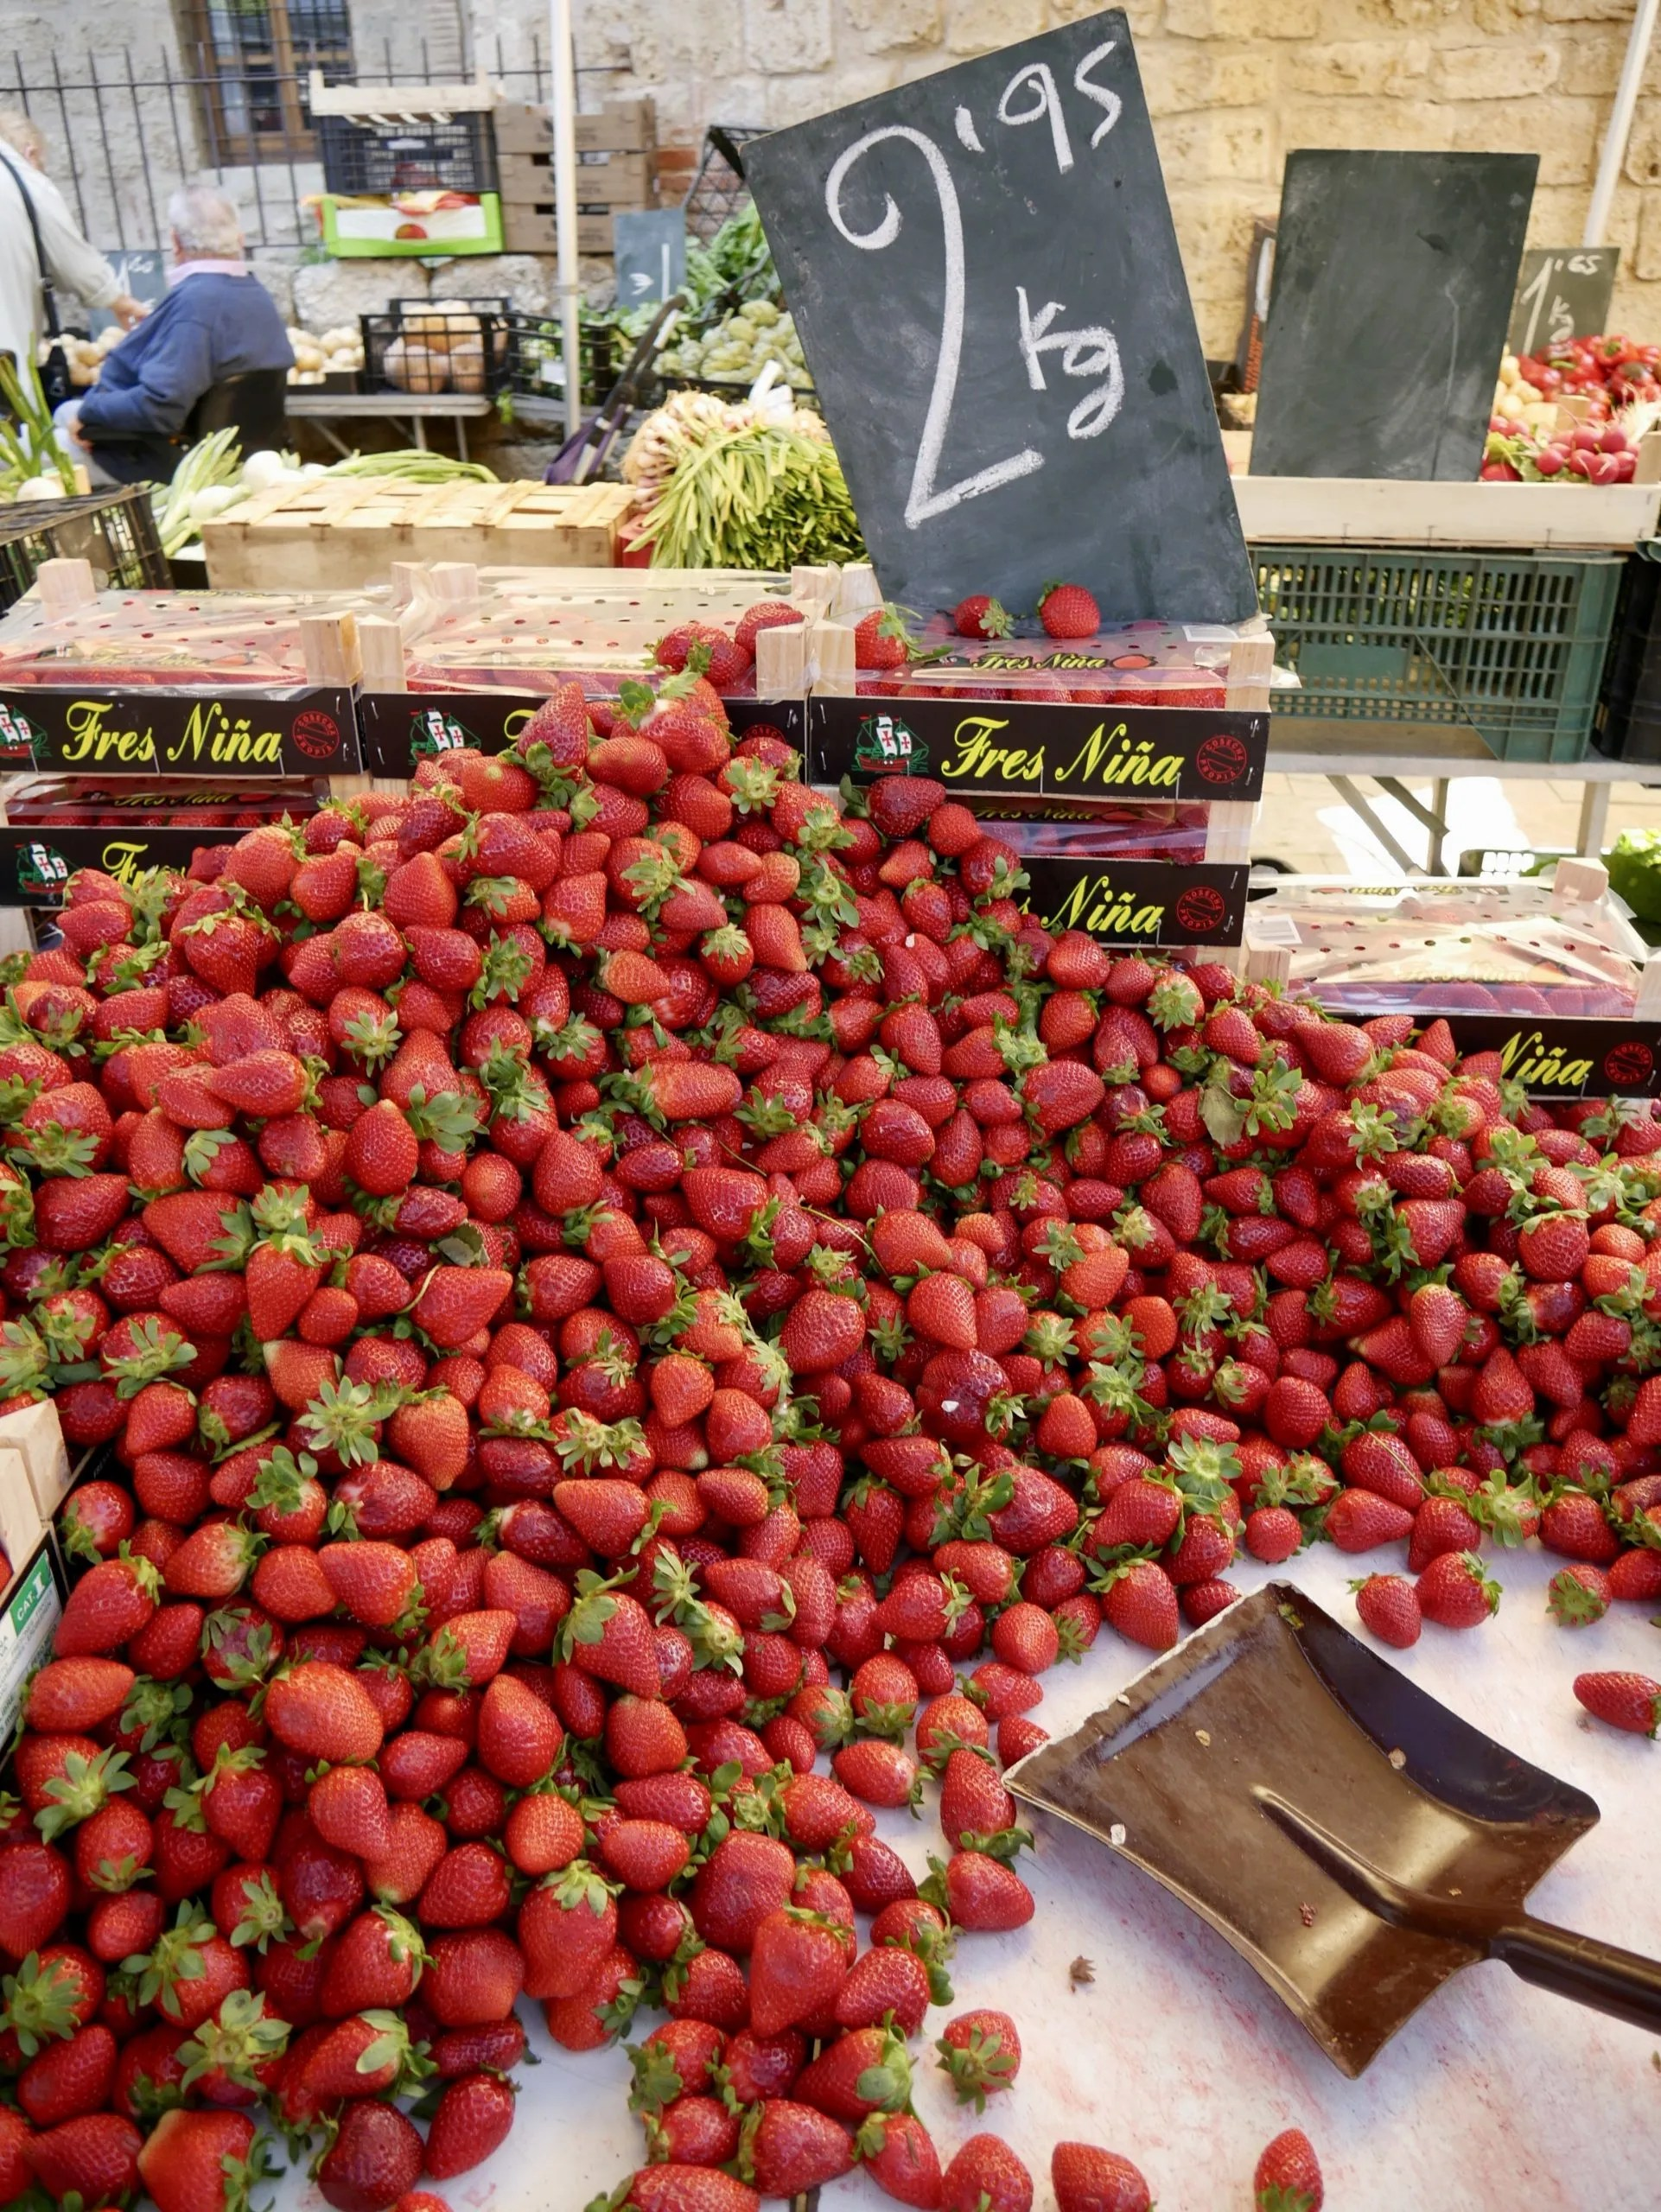 Strawberries market stall